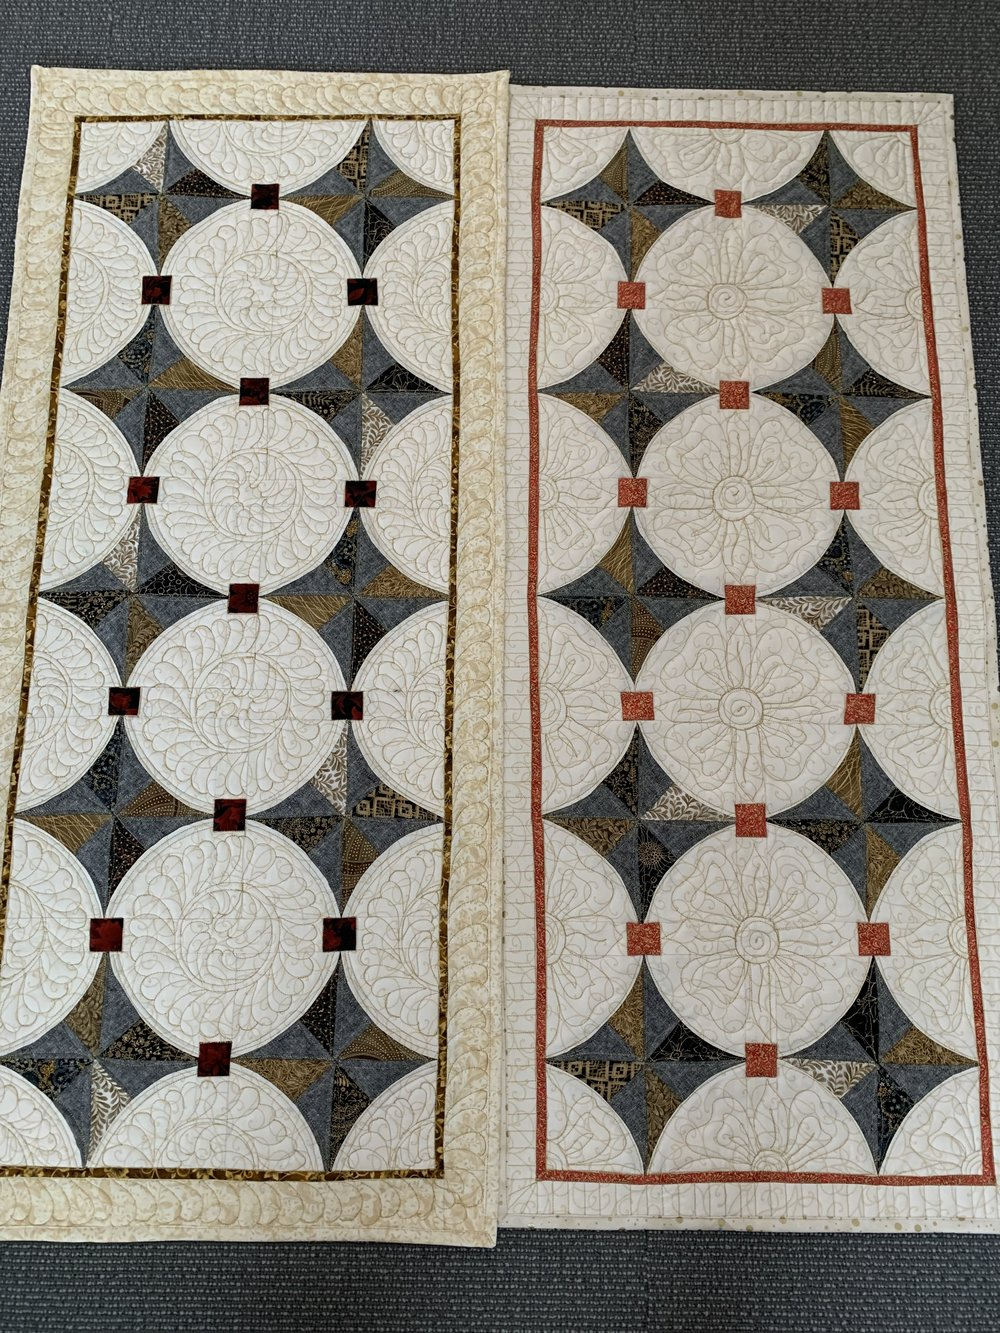 Both runners the same but different inside squares, borders and quilting.